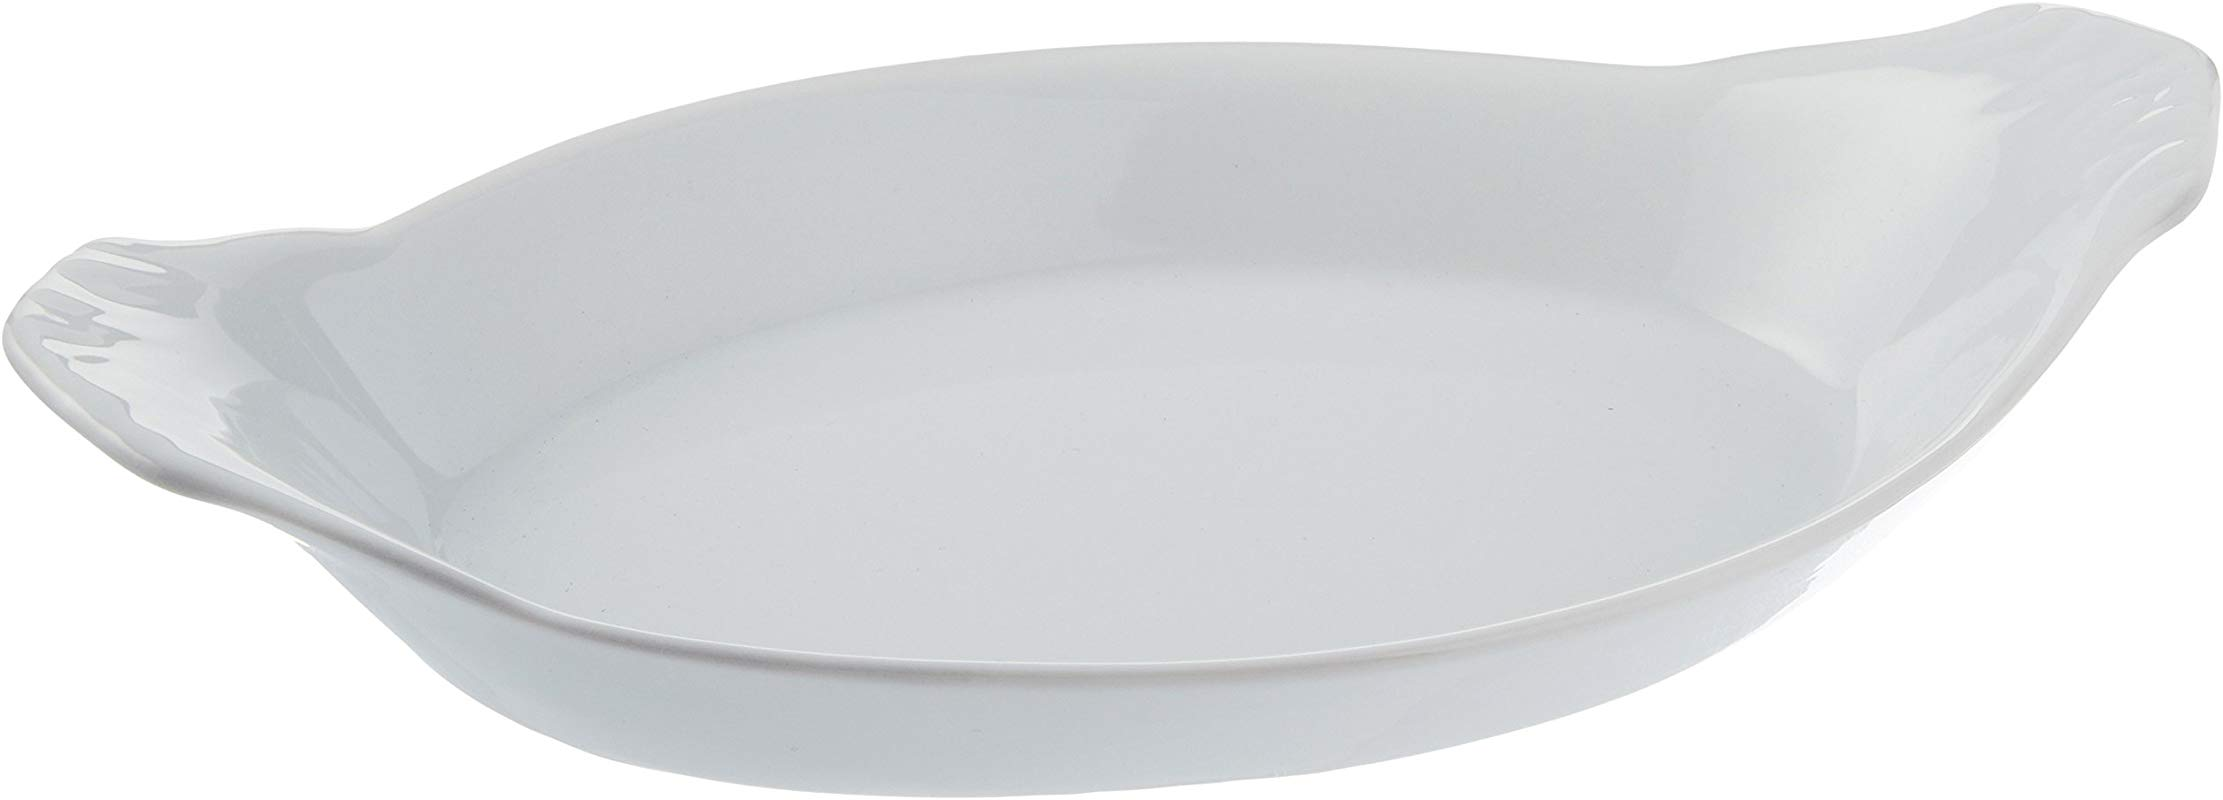 Bia Cordon Bleu 900049 White Oval Porcelain Au Gratin Bowl 8 Oz White